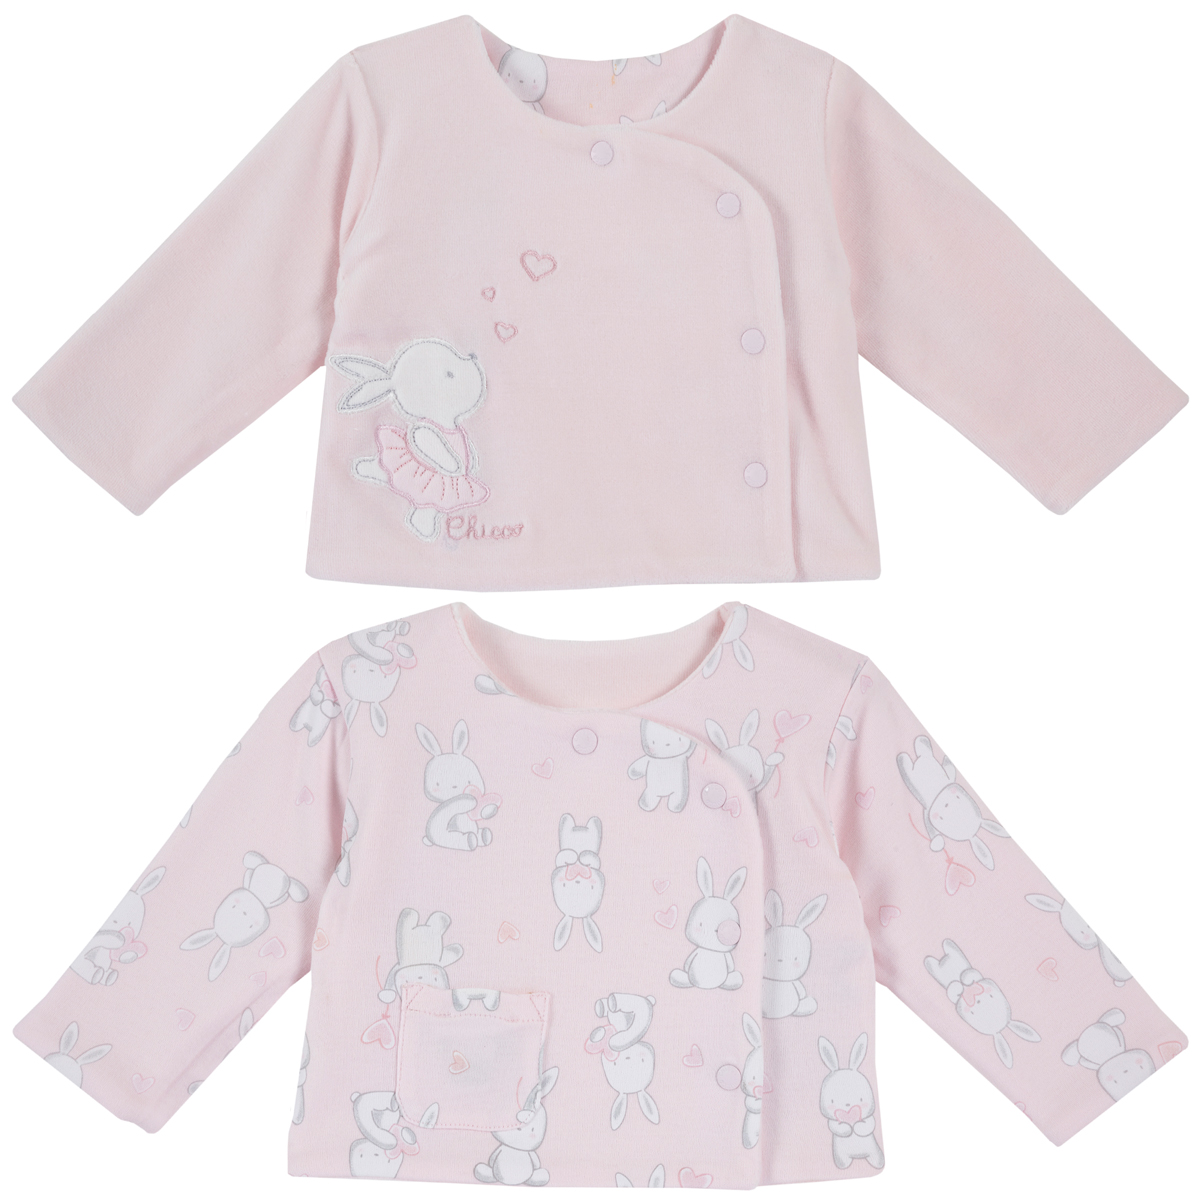 Cardigan copii Chicco, reversibil, imprimeu animalute, 96938 din categoria Cardigan copii